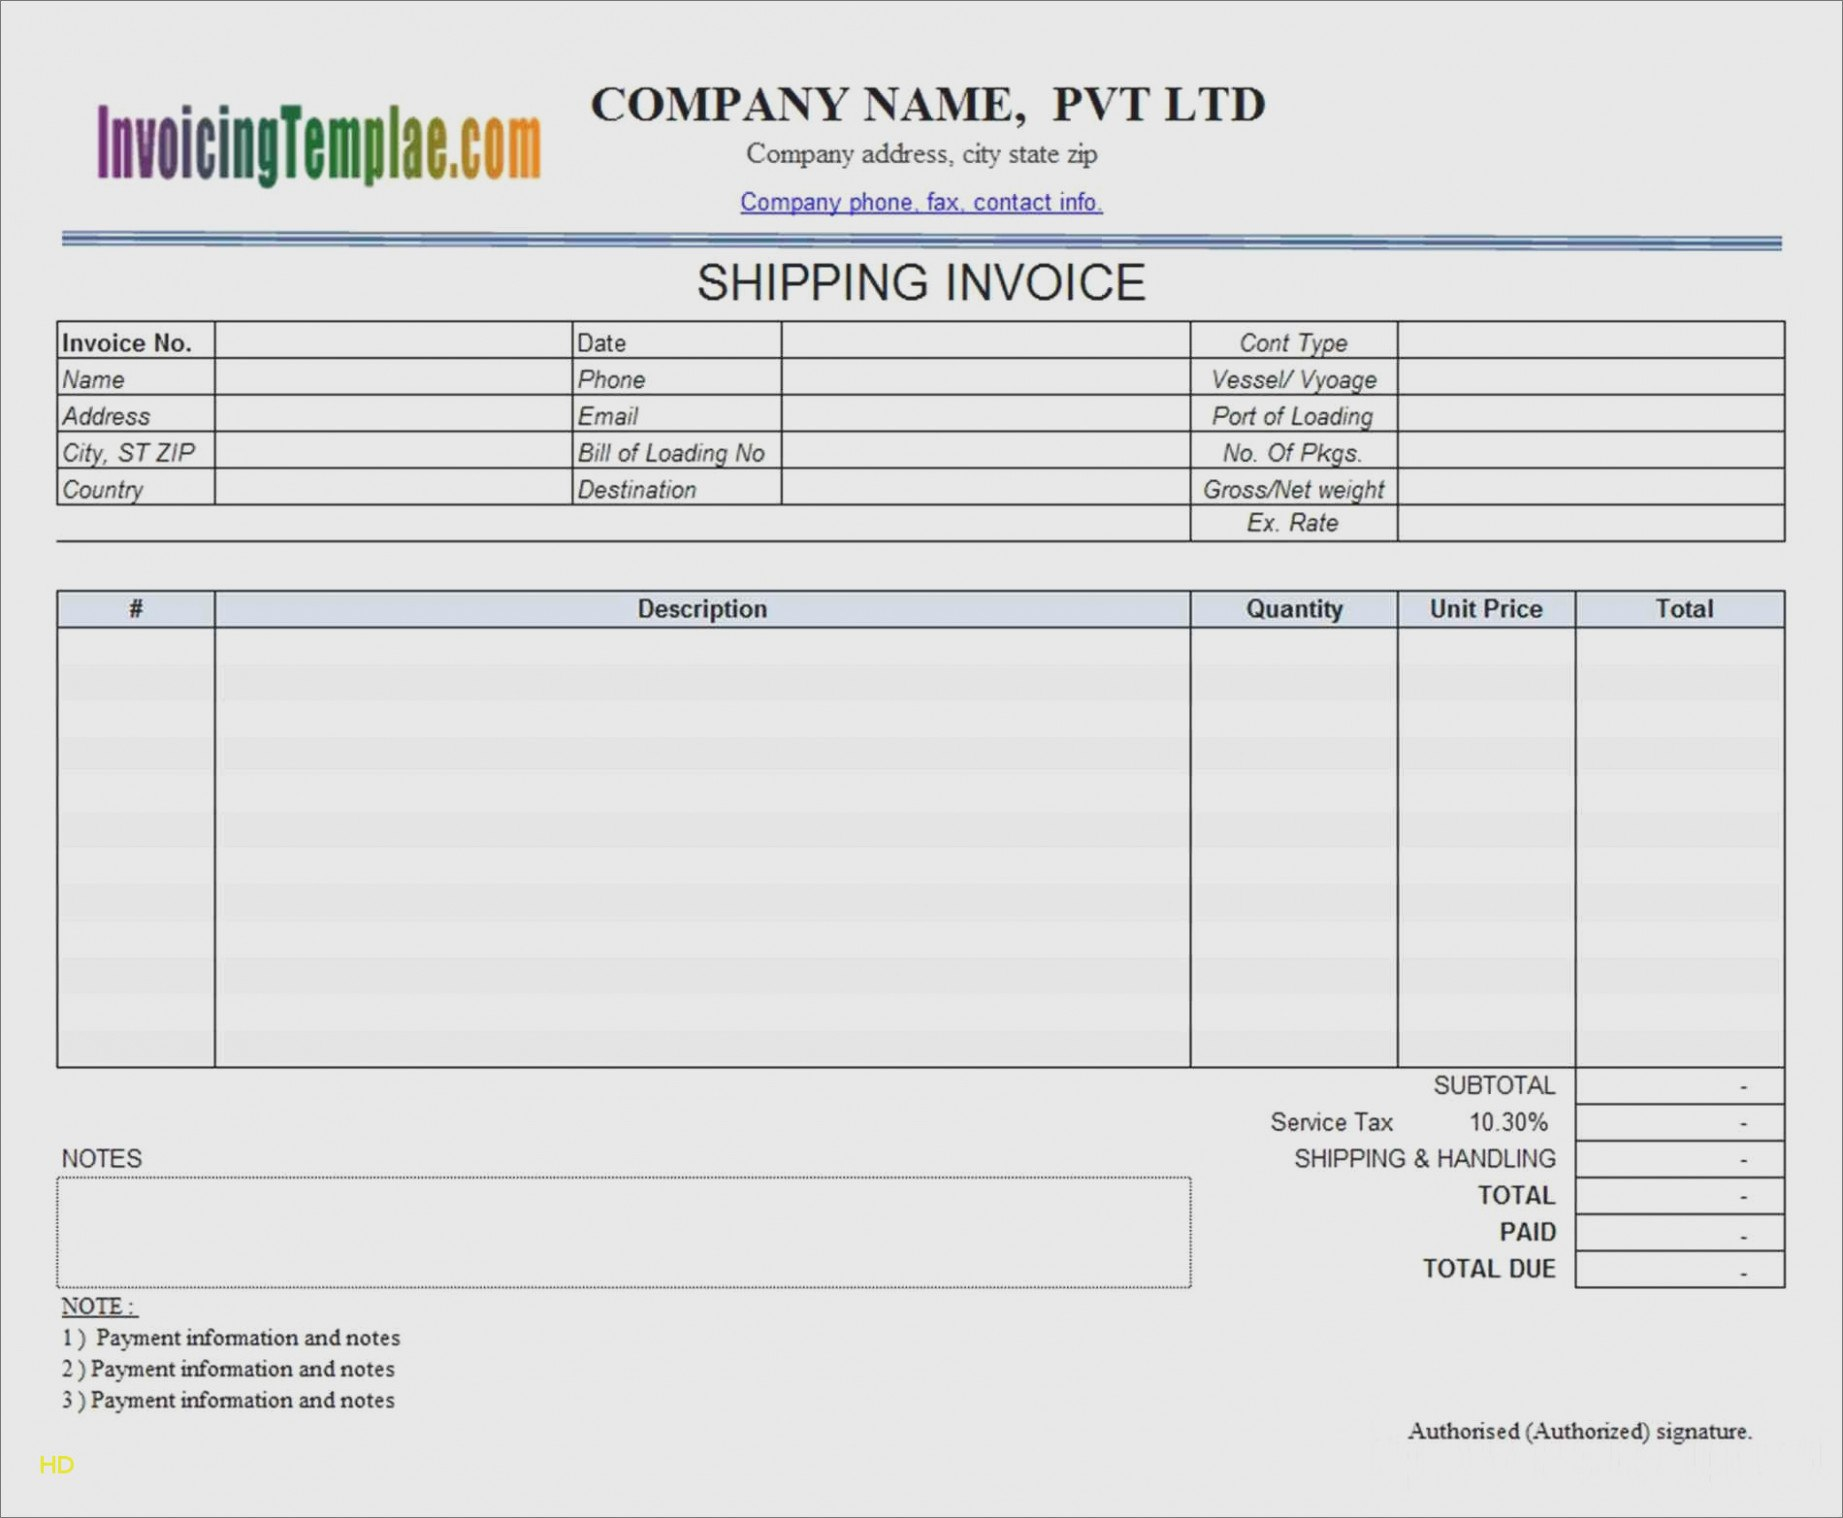 Towing Service Invoice Template Free Towing Invoice Template Towing In Towing Service Invoice Template